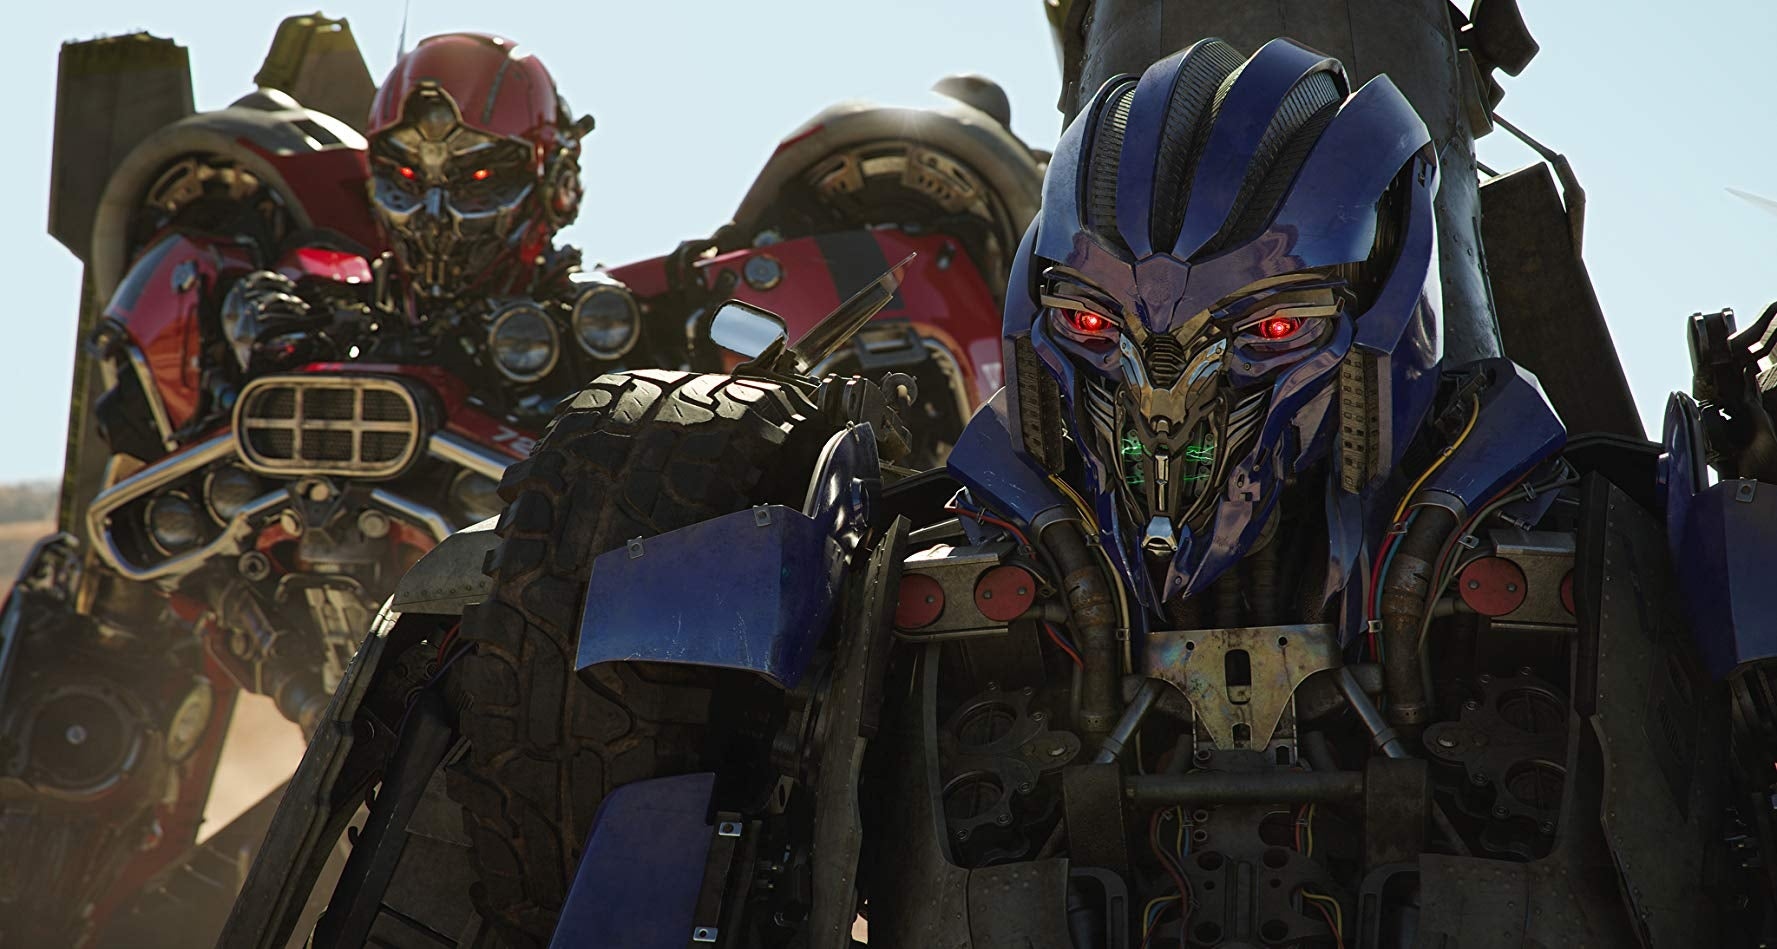 Two New Transformers Scripts In The Works Are Aiming To Shake Up The Franchise